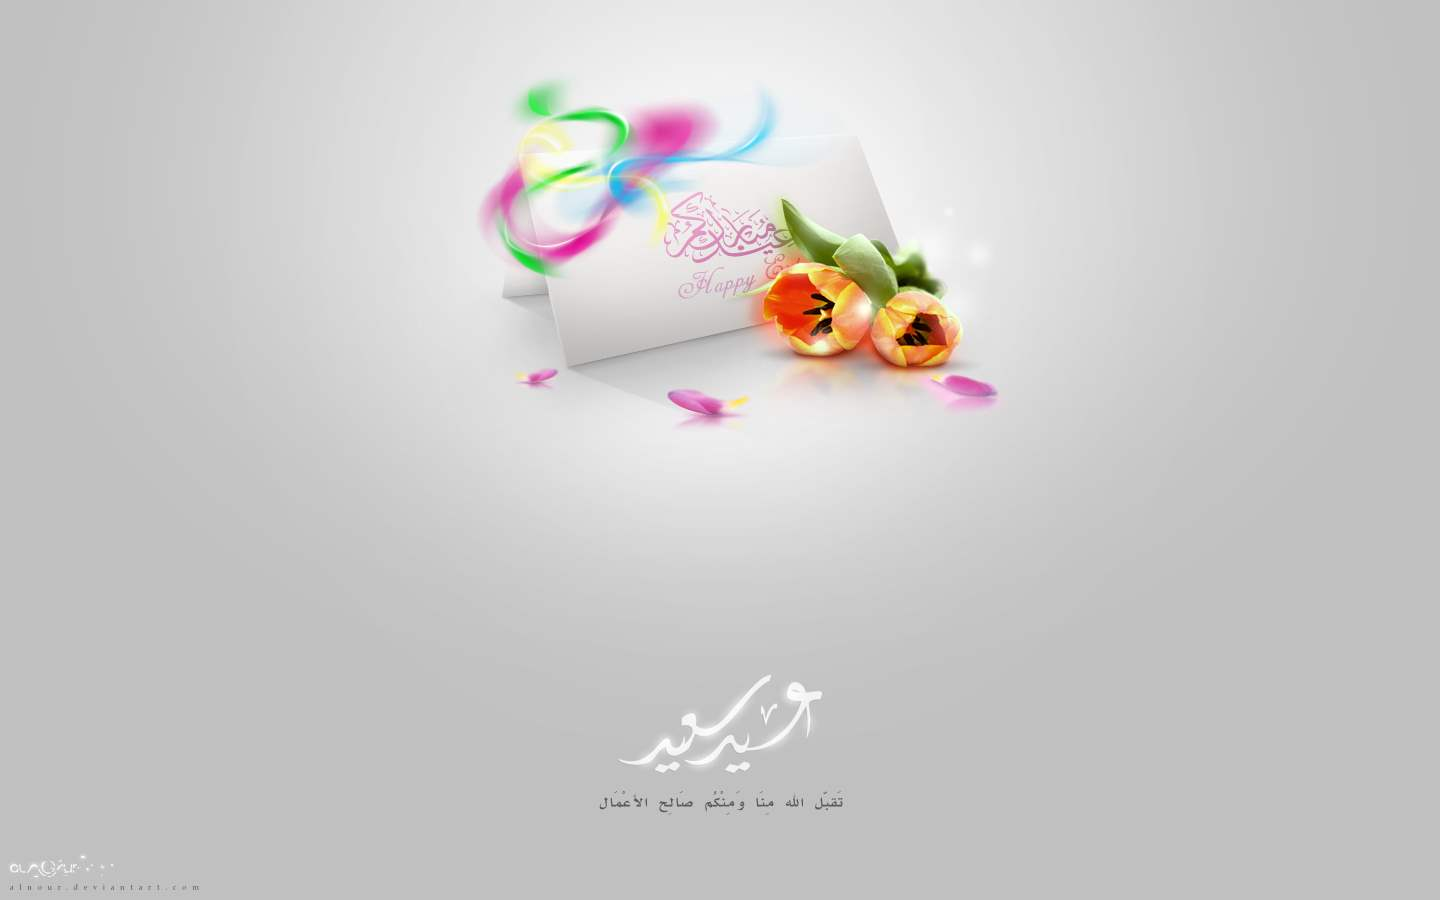 eid mubarak wallpaper photos 2015